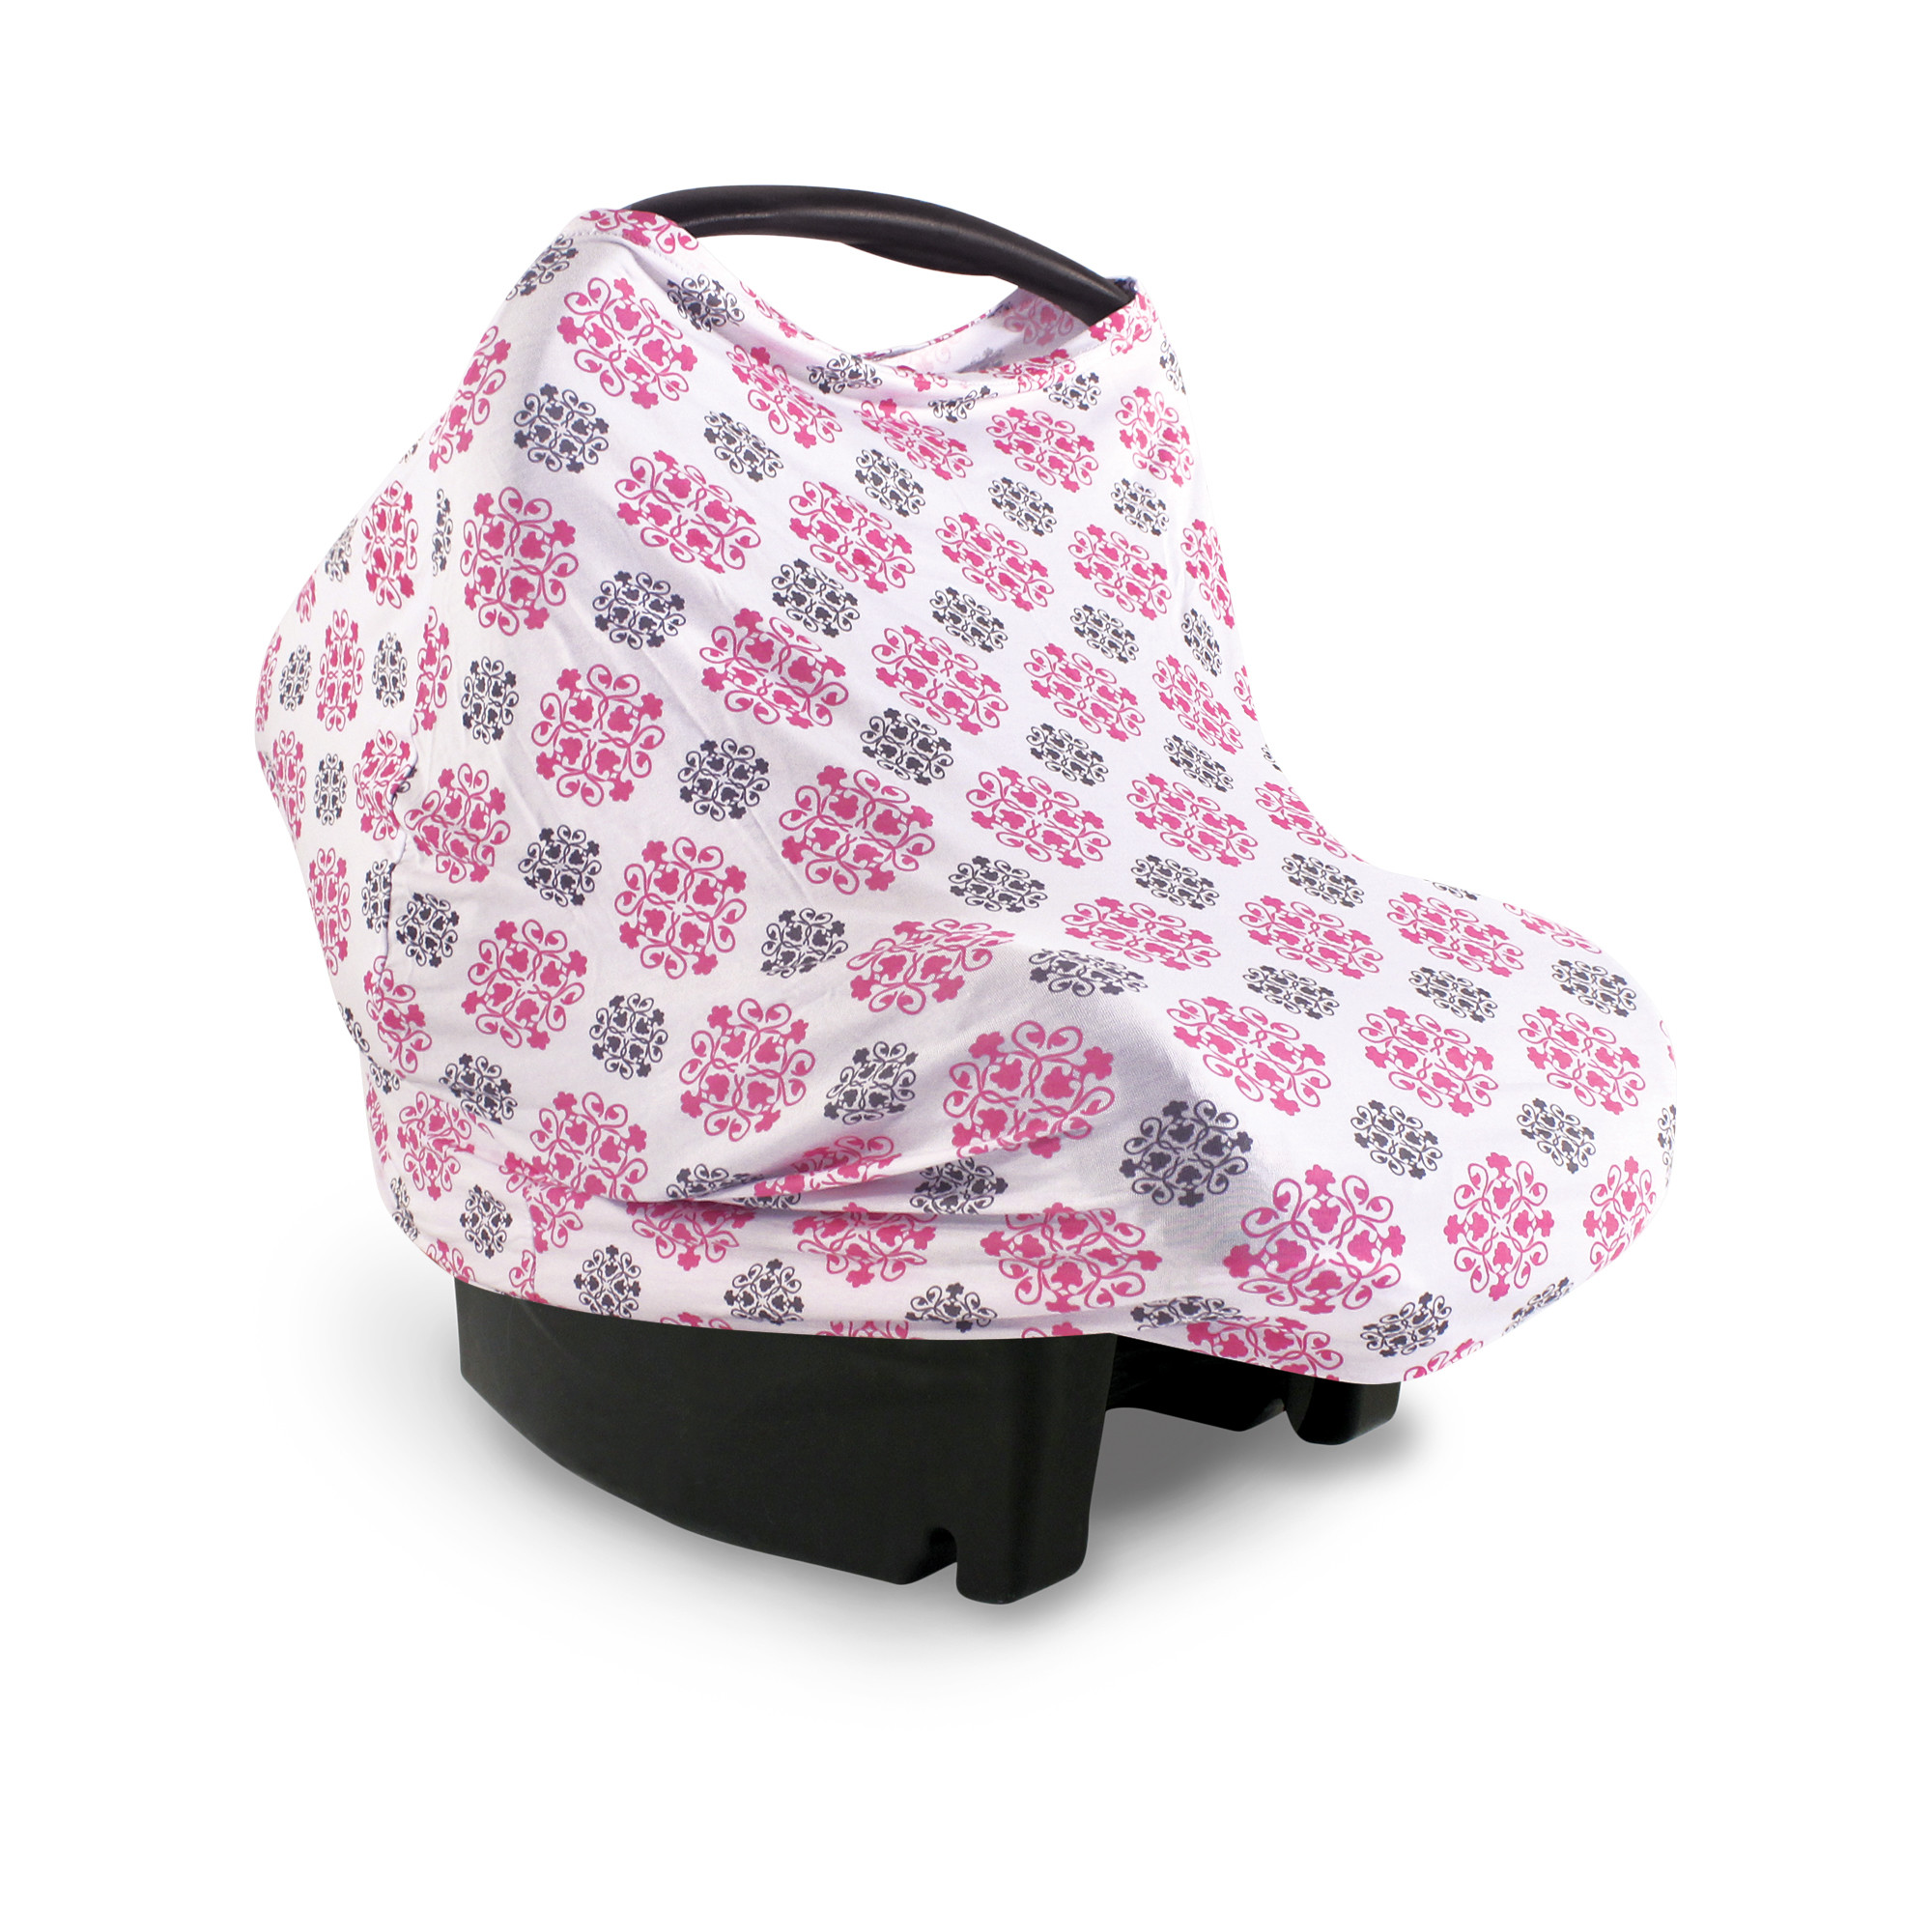 Yoga Sprout Multi Use Carseat Canopy, High Chair Cover, Nursing Cover - Medallion